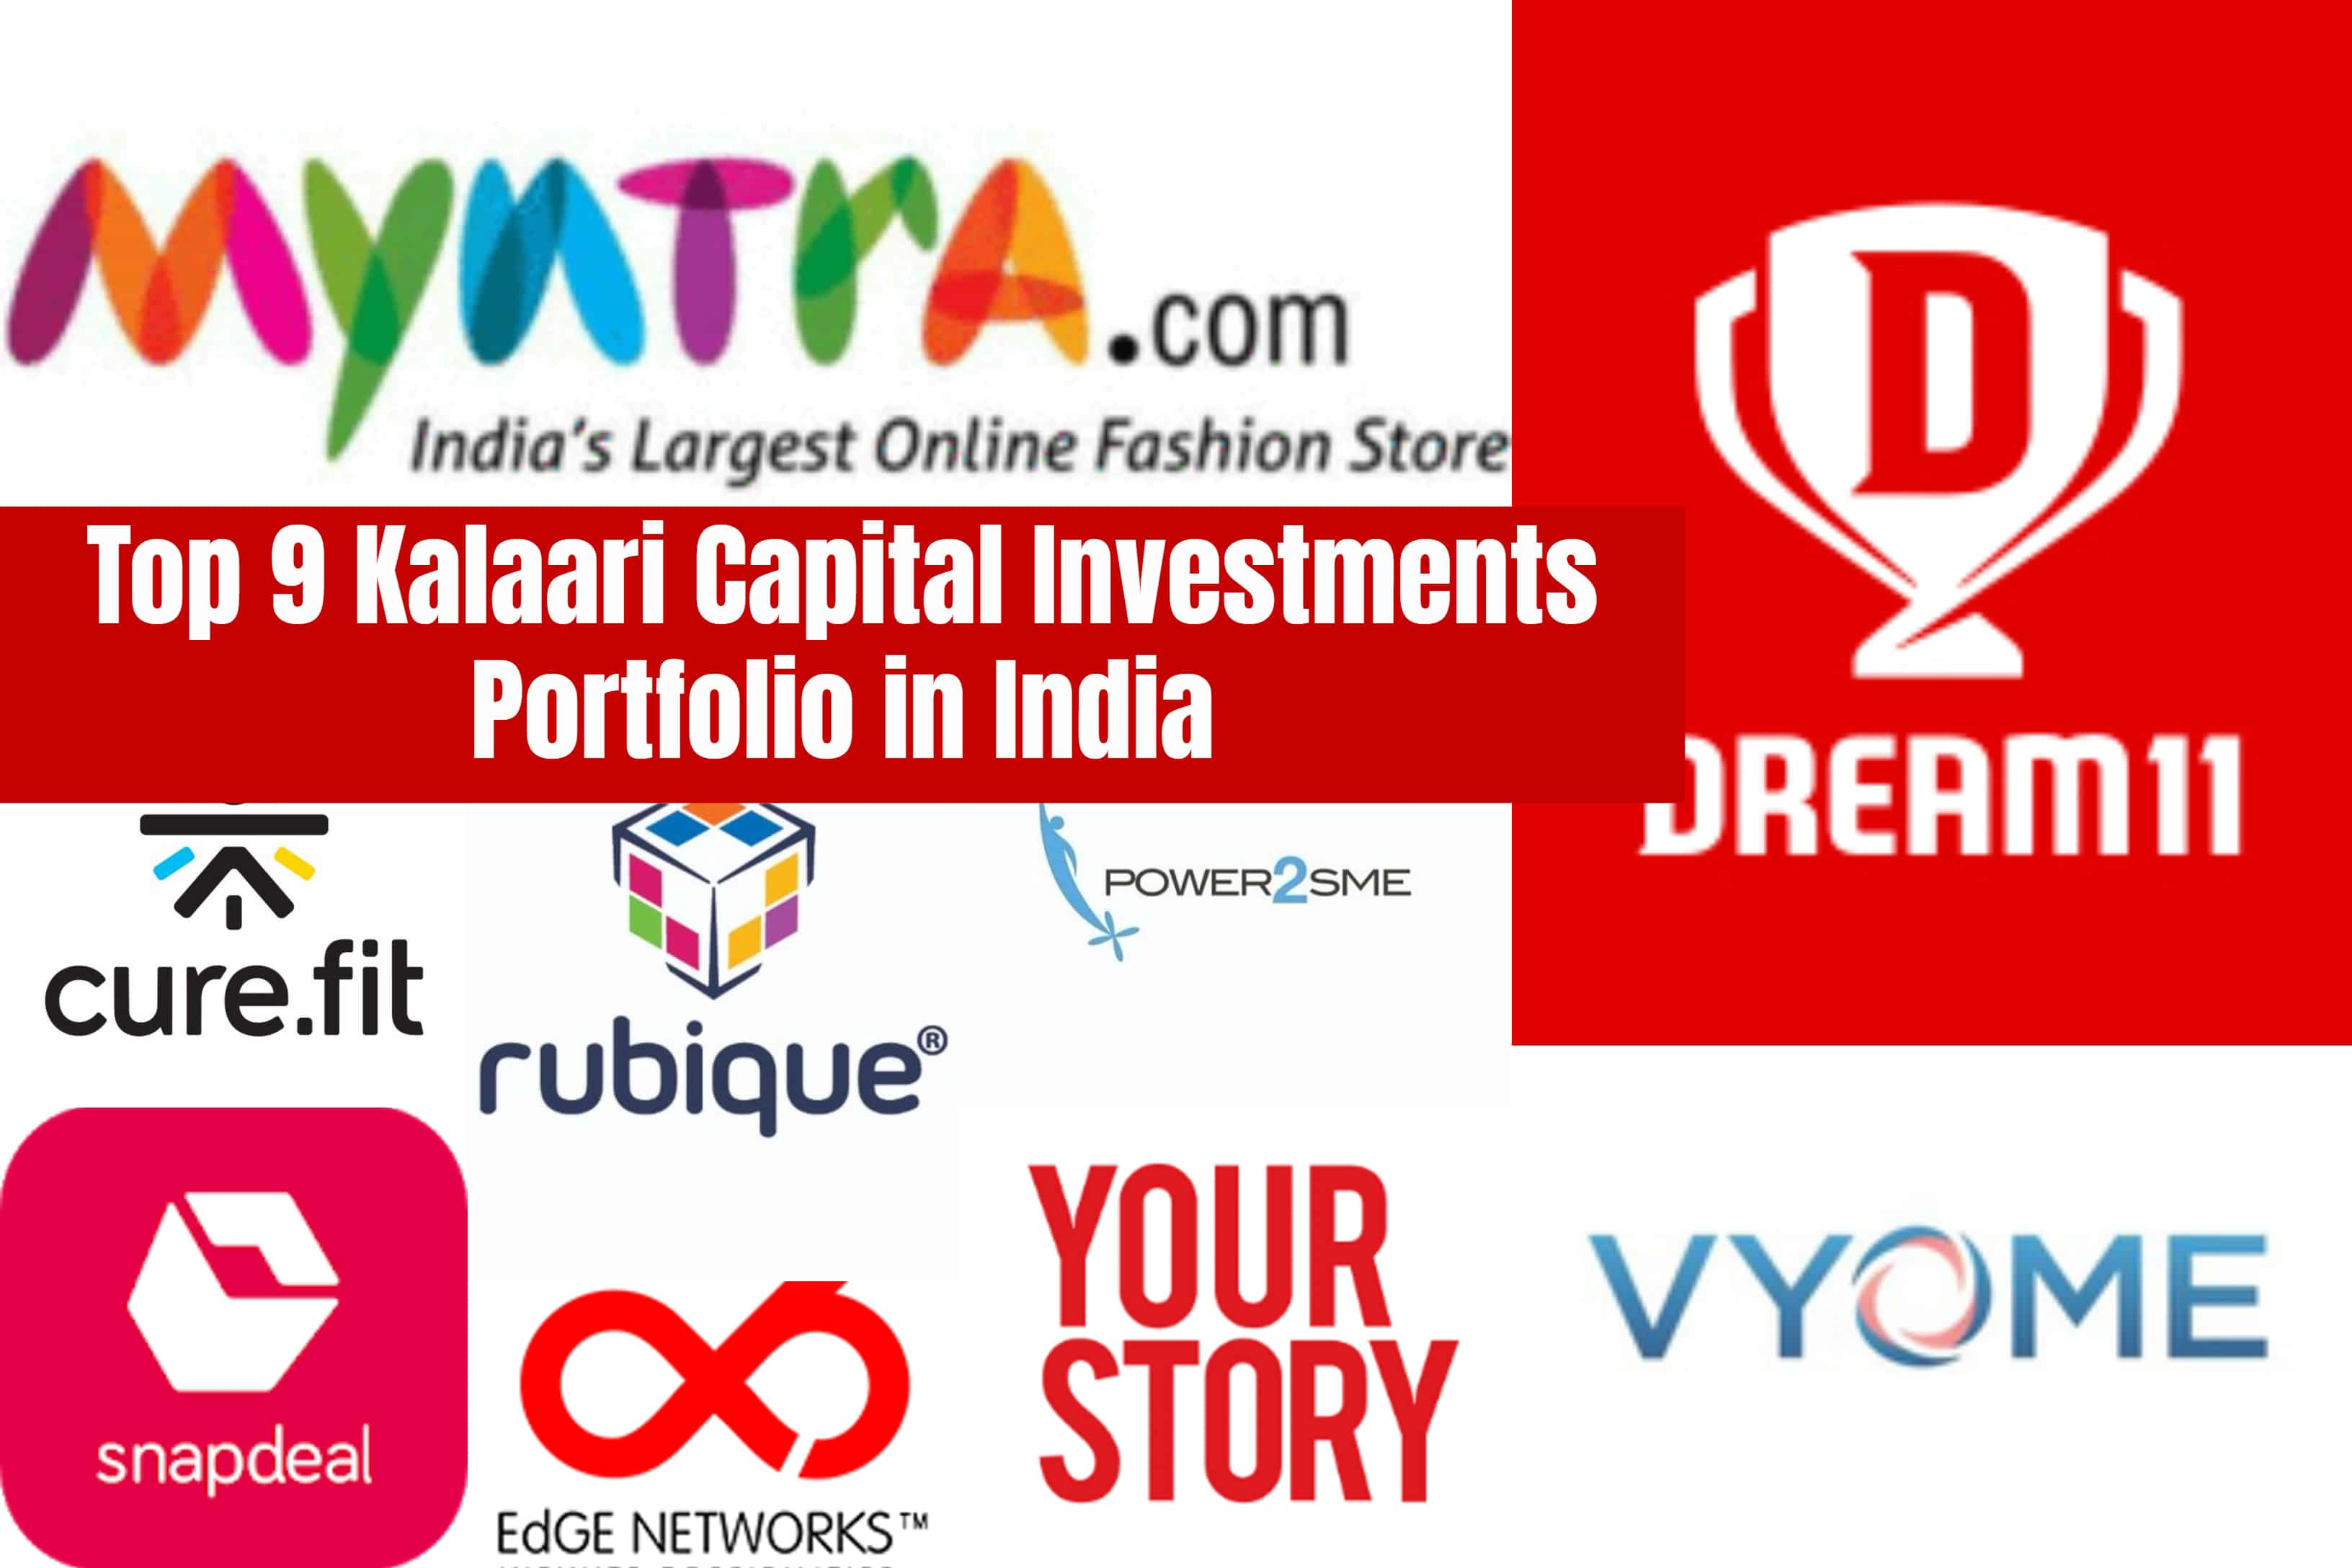 Top 9 Kalaari Capital Investments Portfolio in India